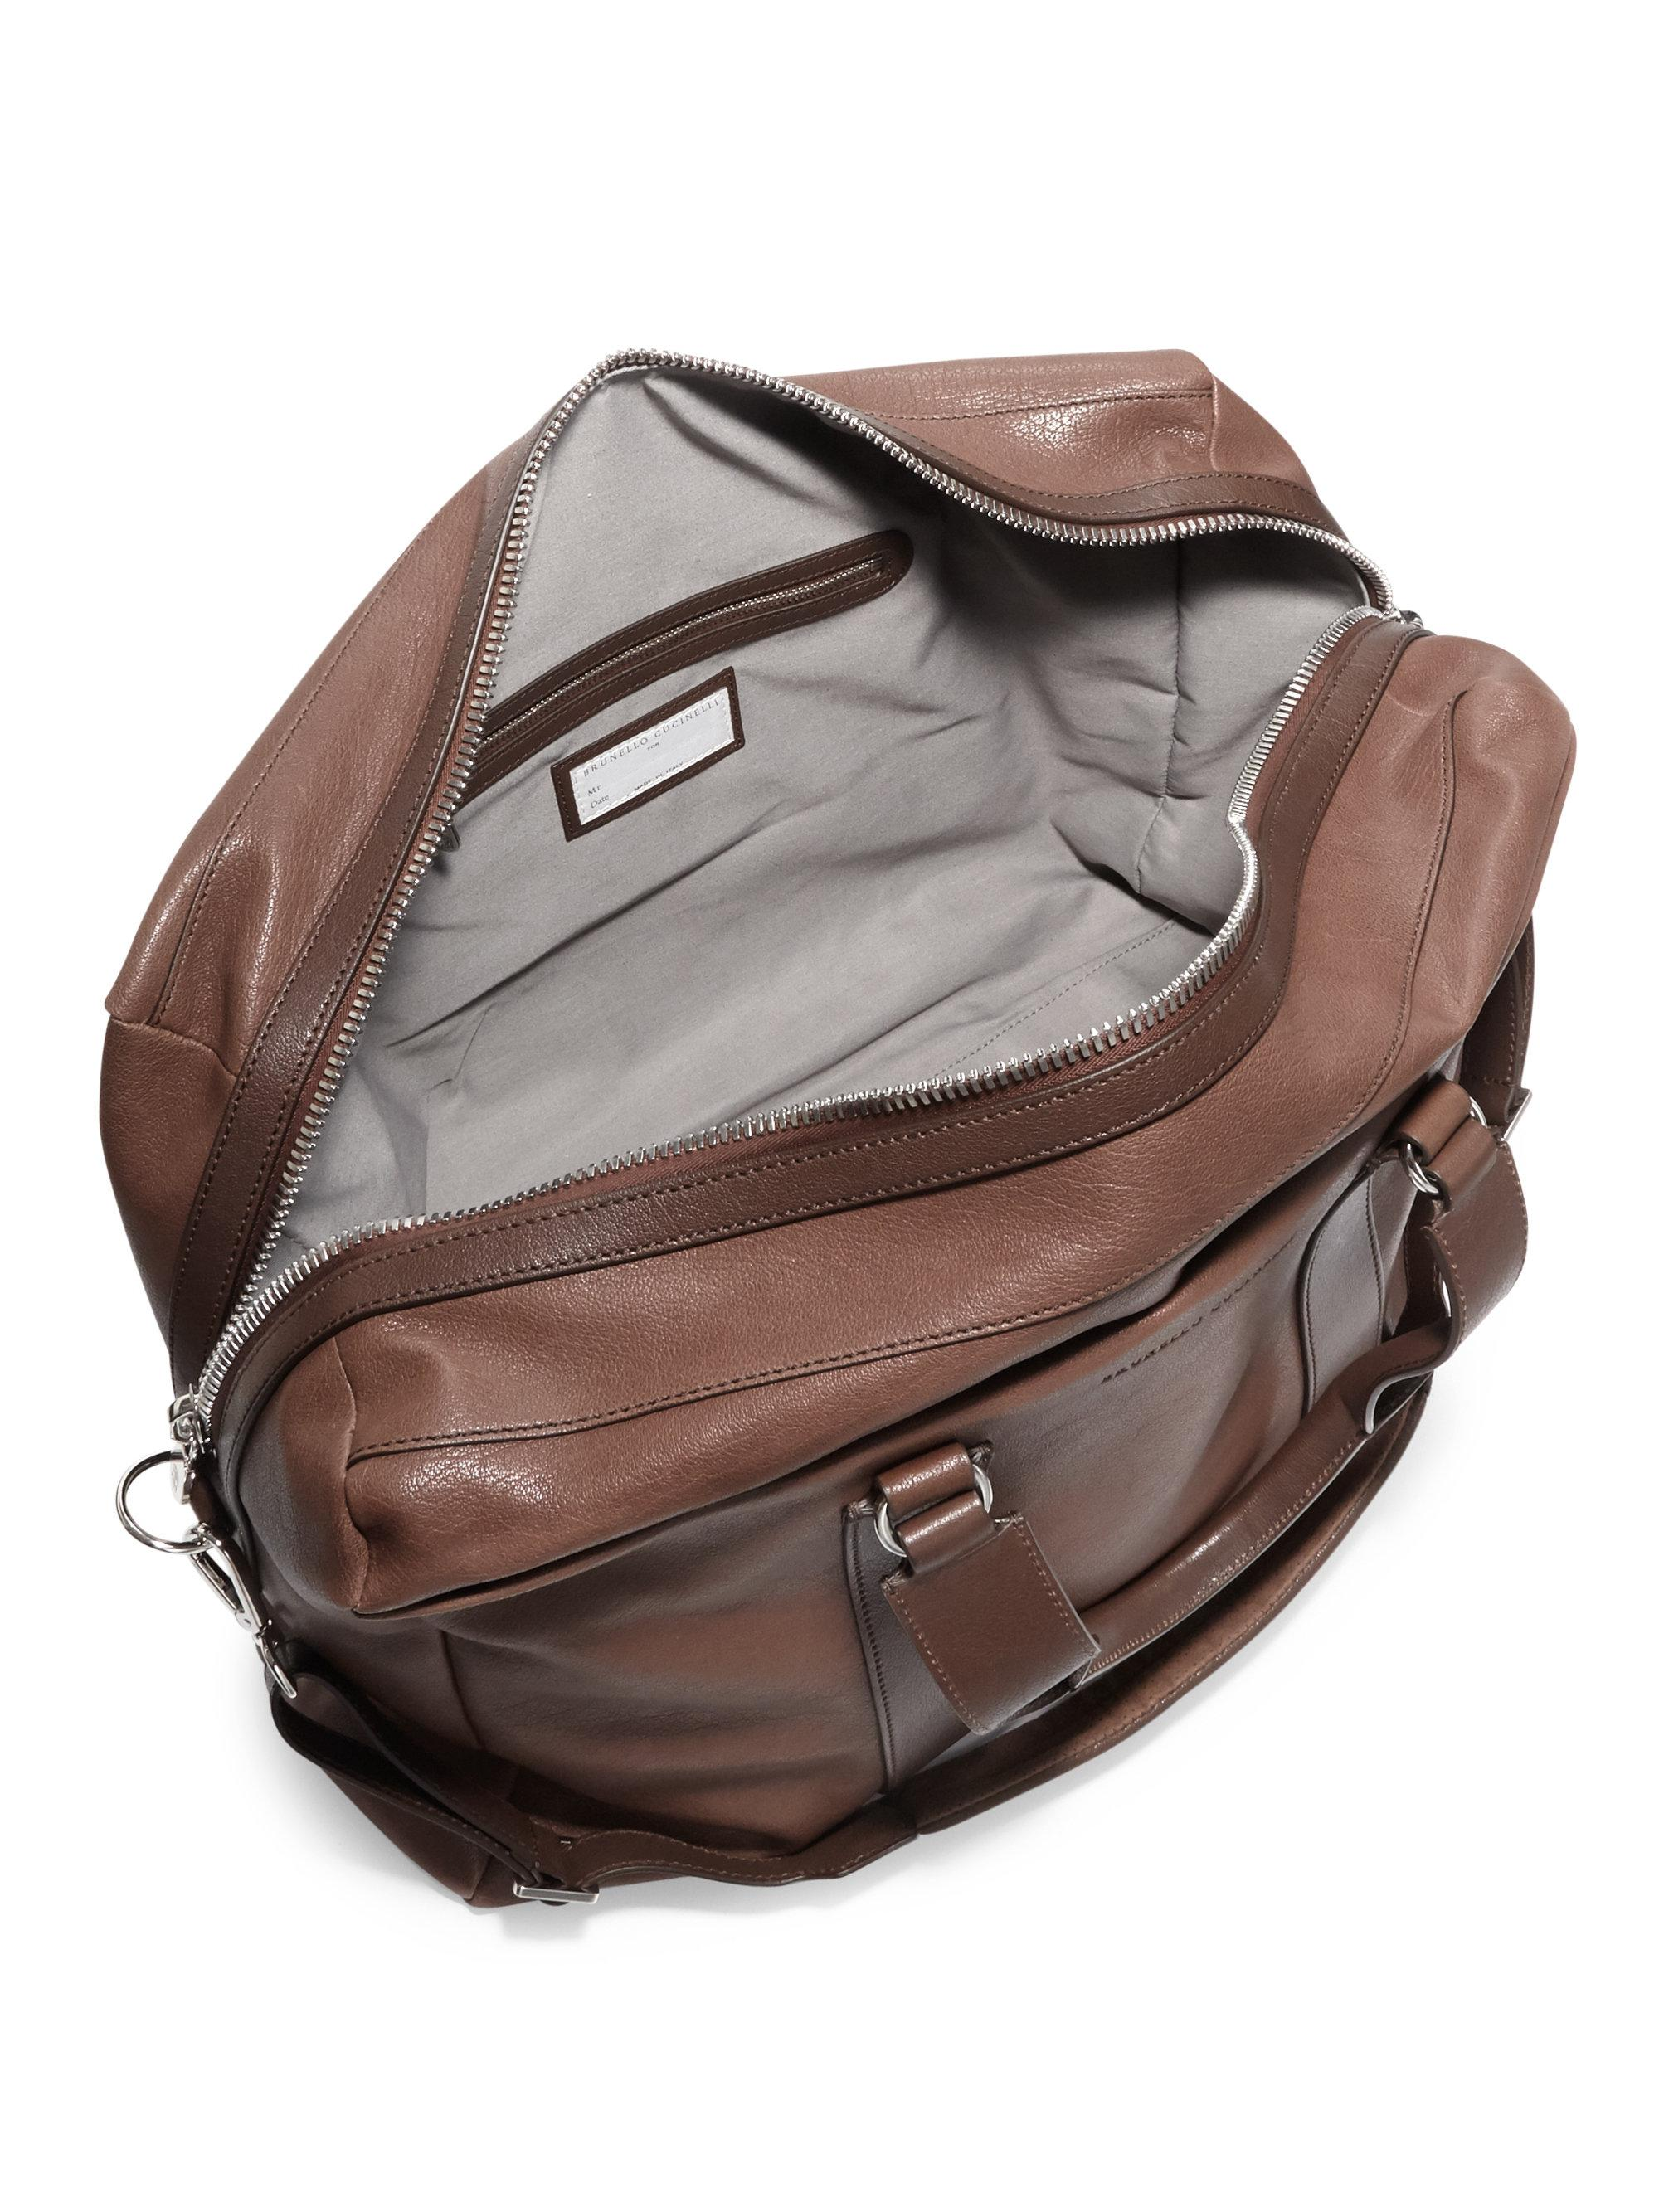 Brunello Cucinelli Leather Travel Bag in Brown for Men - Lyst